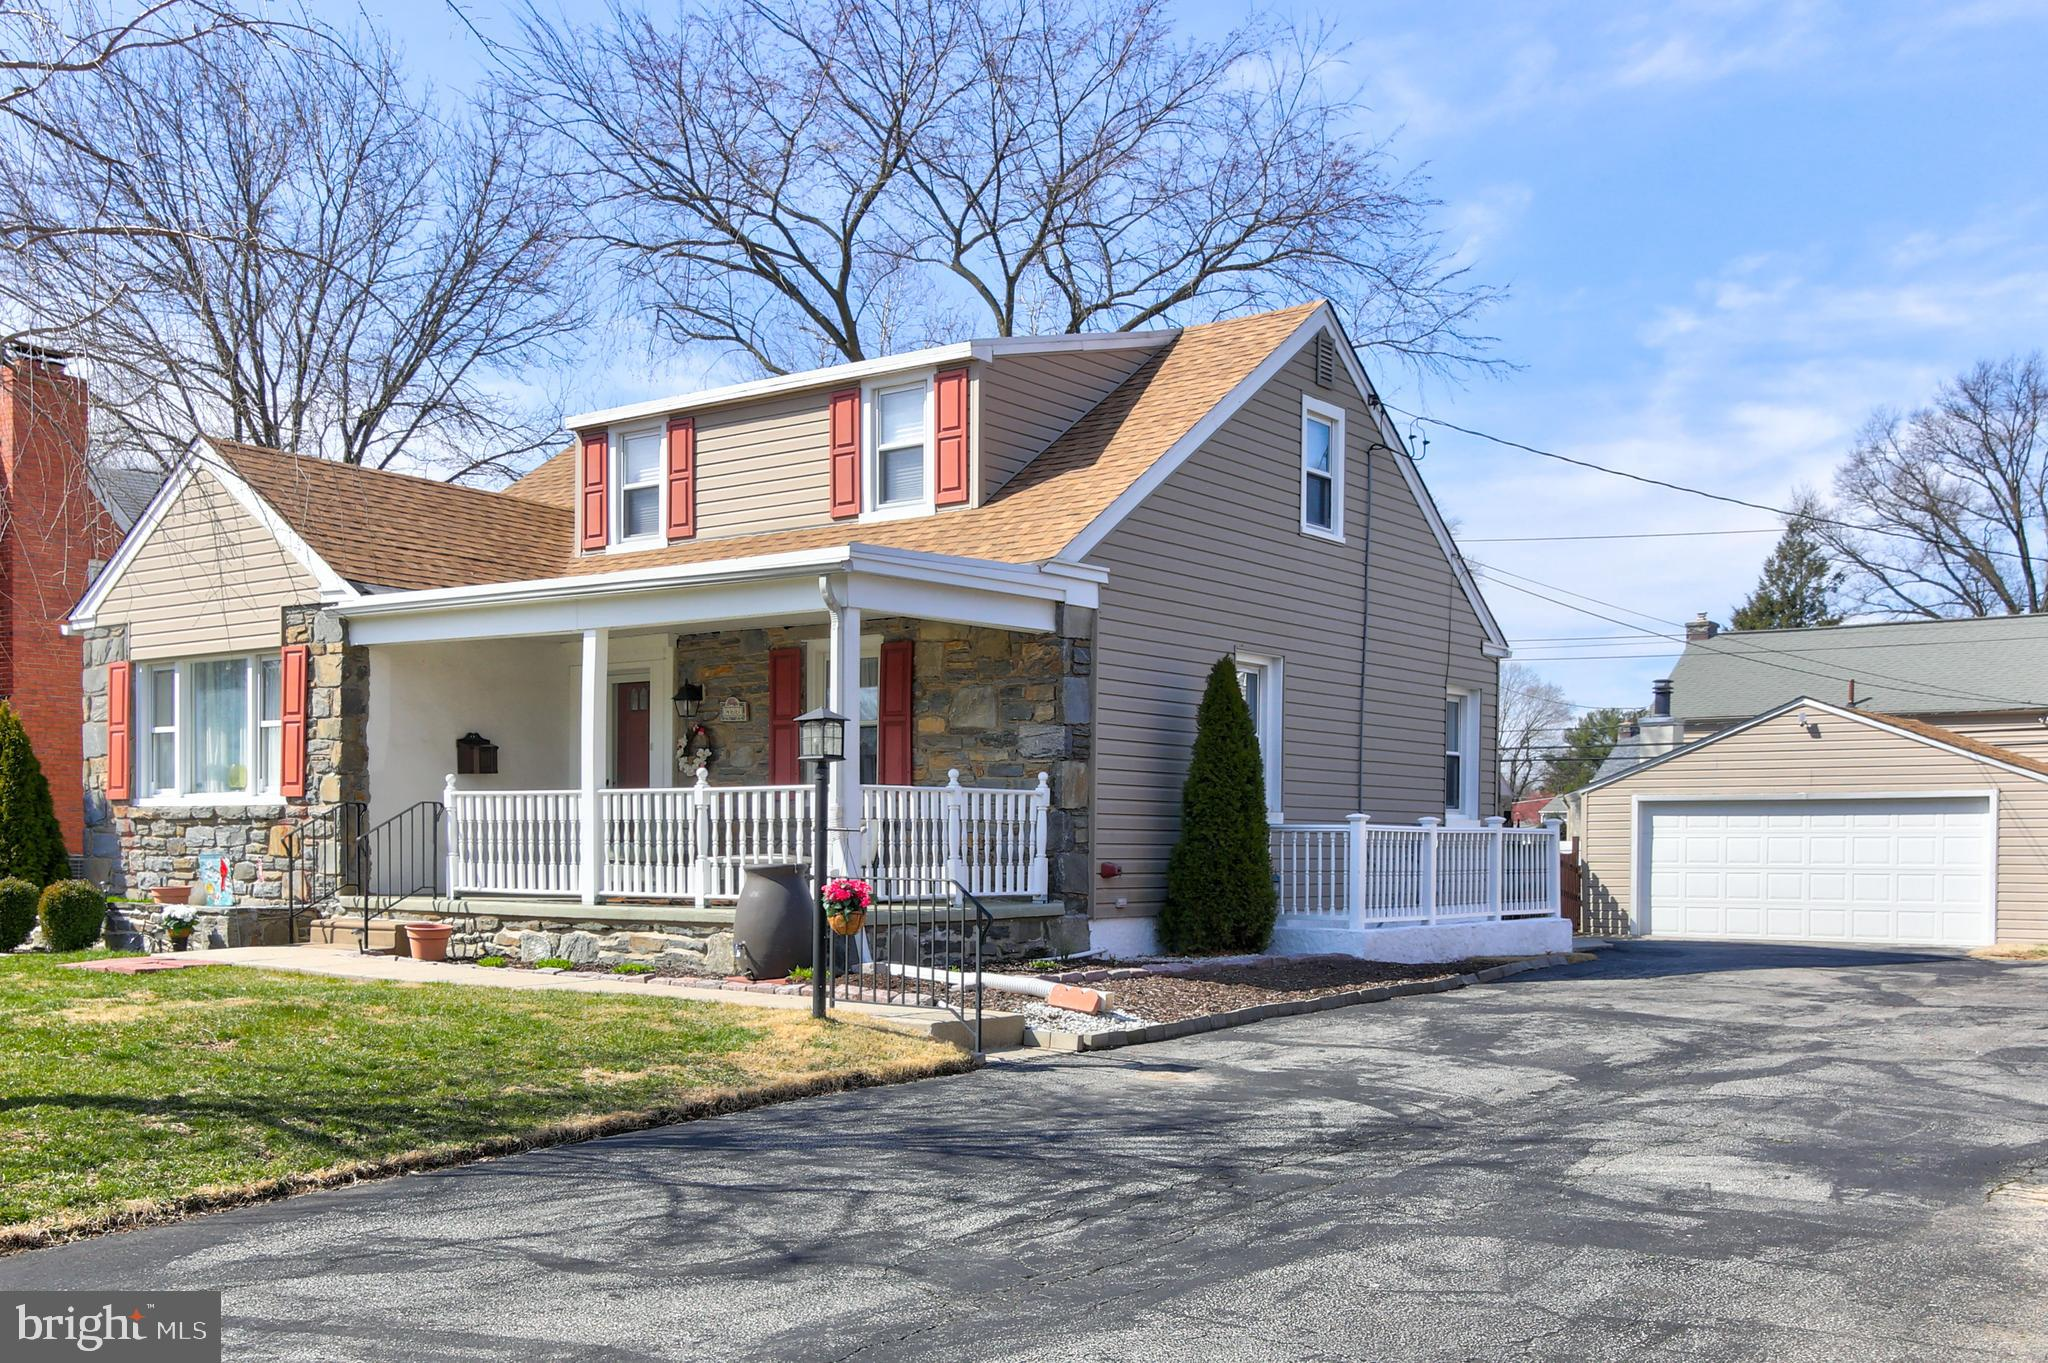 466 THATCHER ROAD, SPRINGFIELD, PA 19064